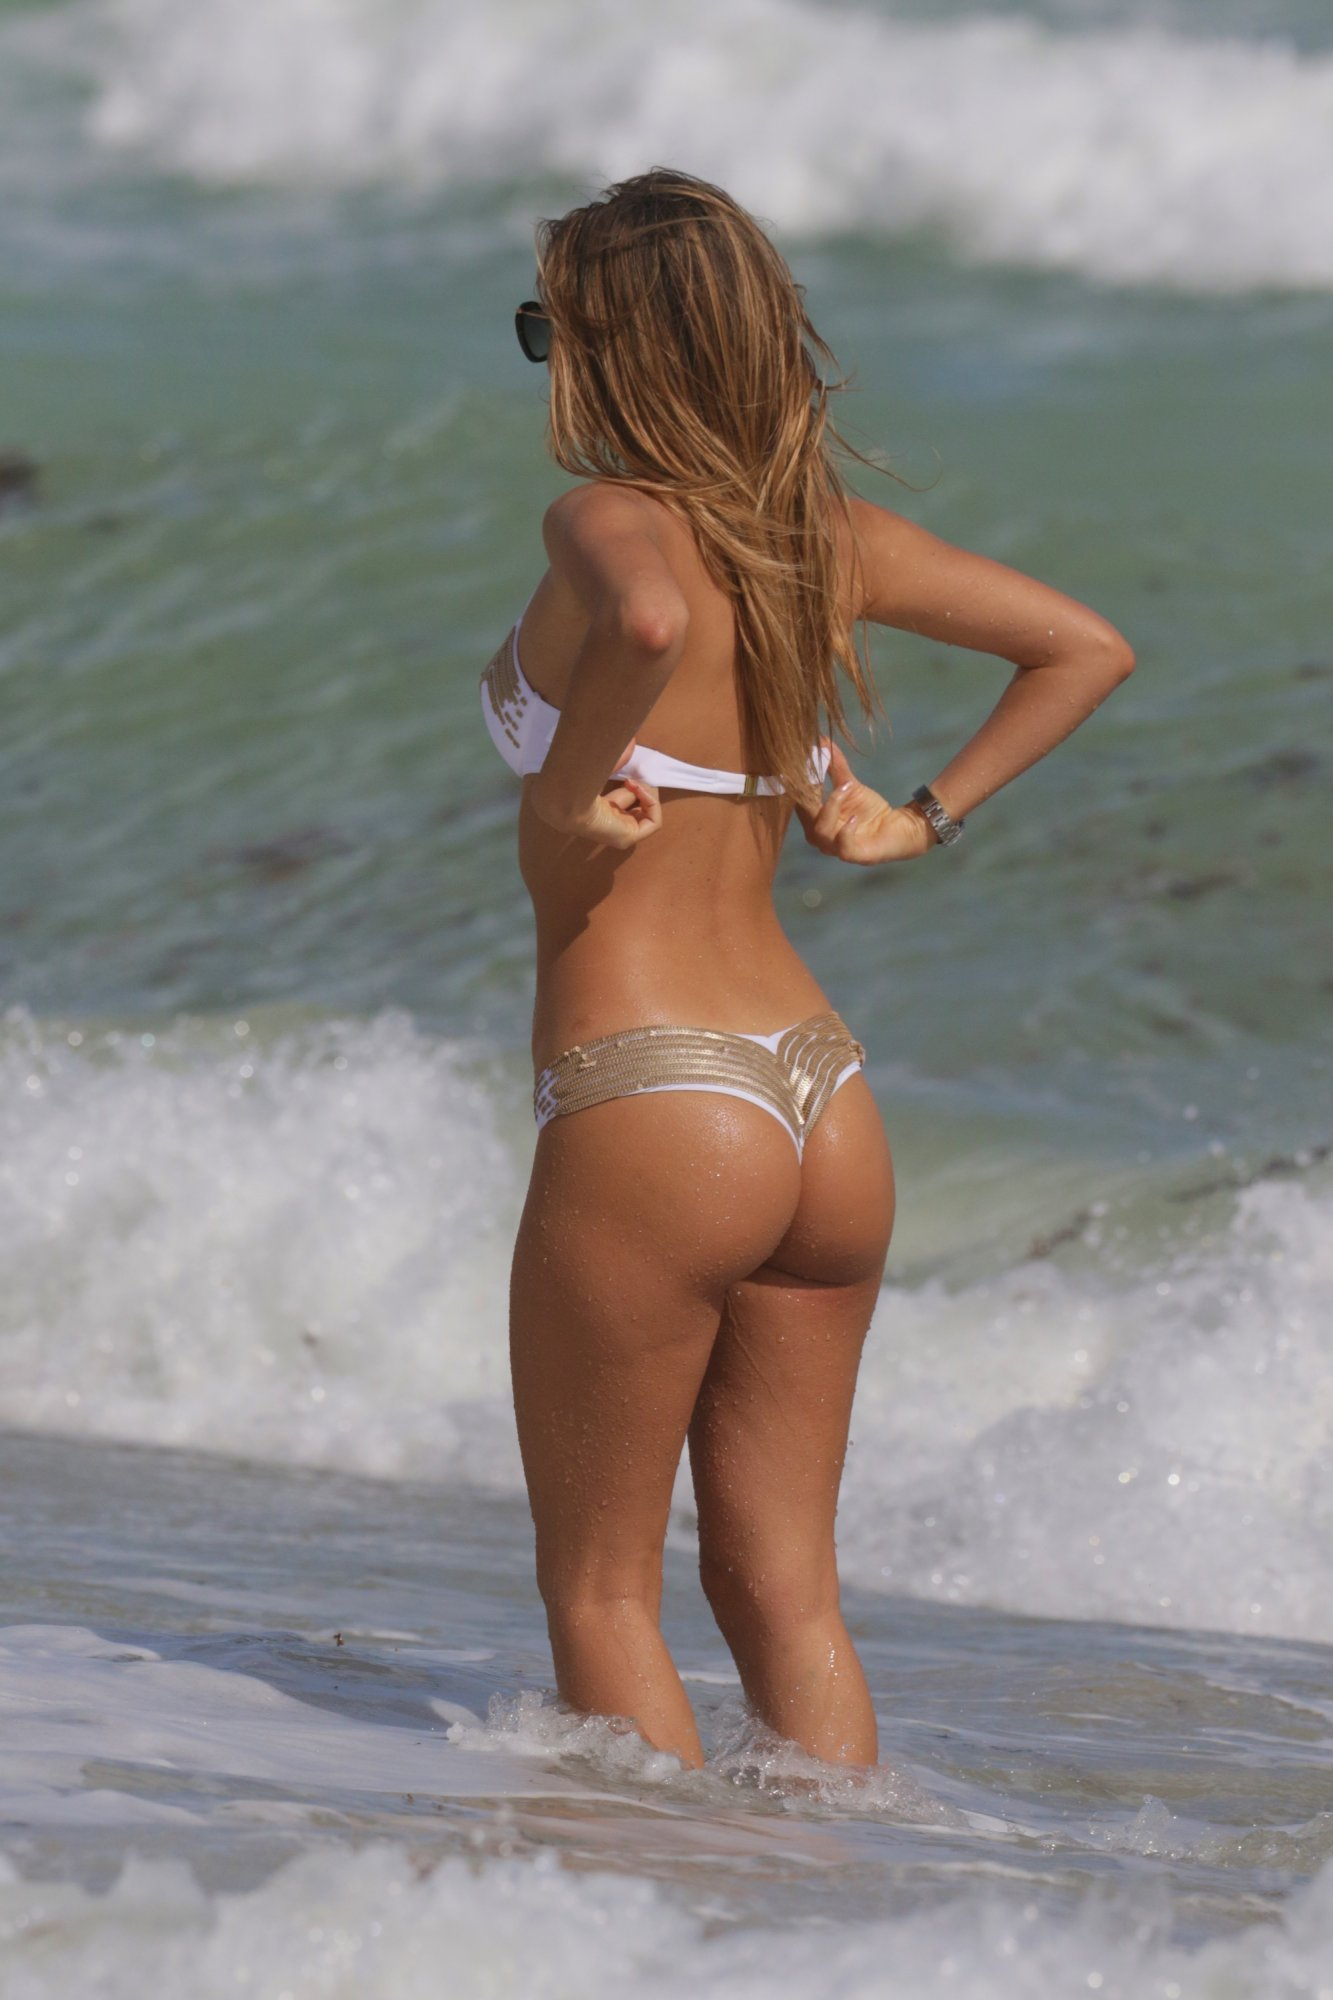 melissa-castagnoli-wearing-a-white-thong-bikini-in-miami-13